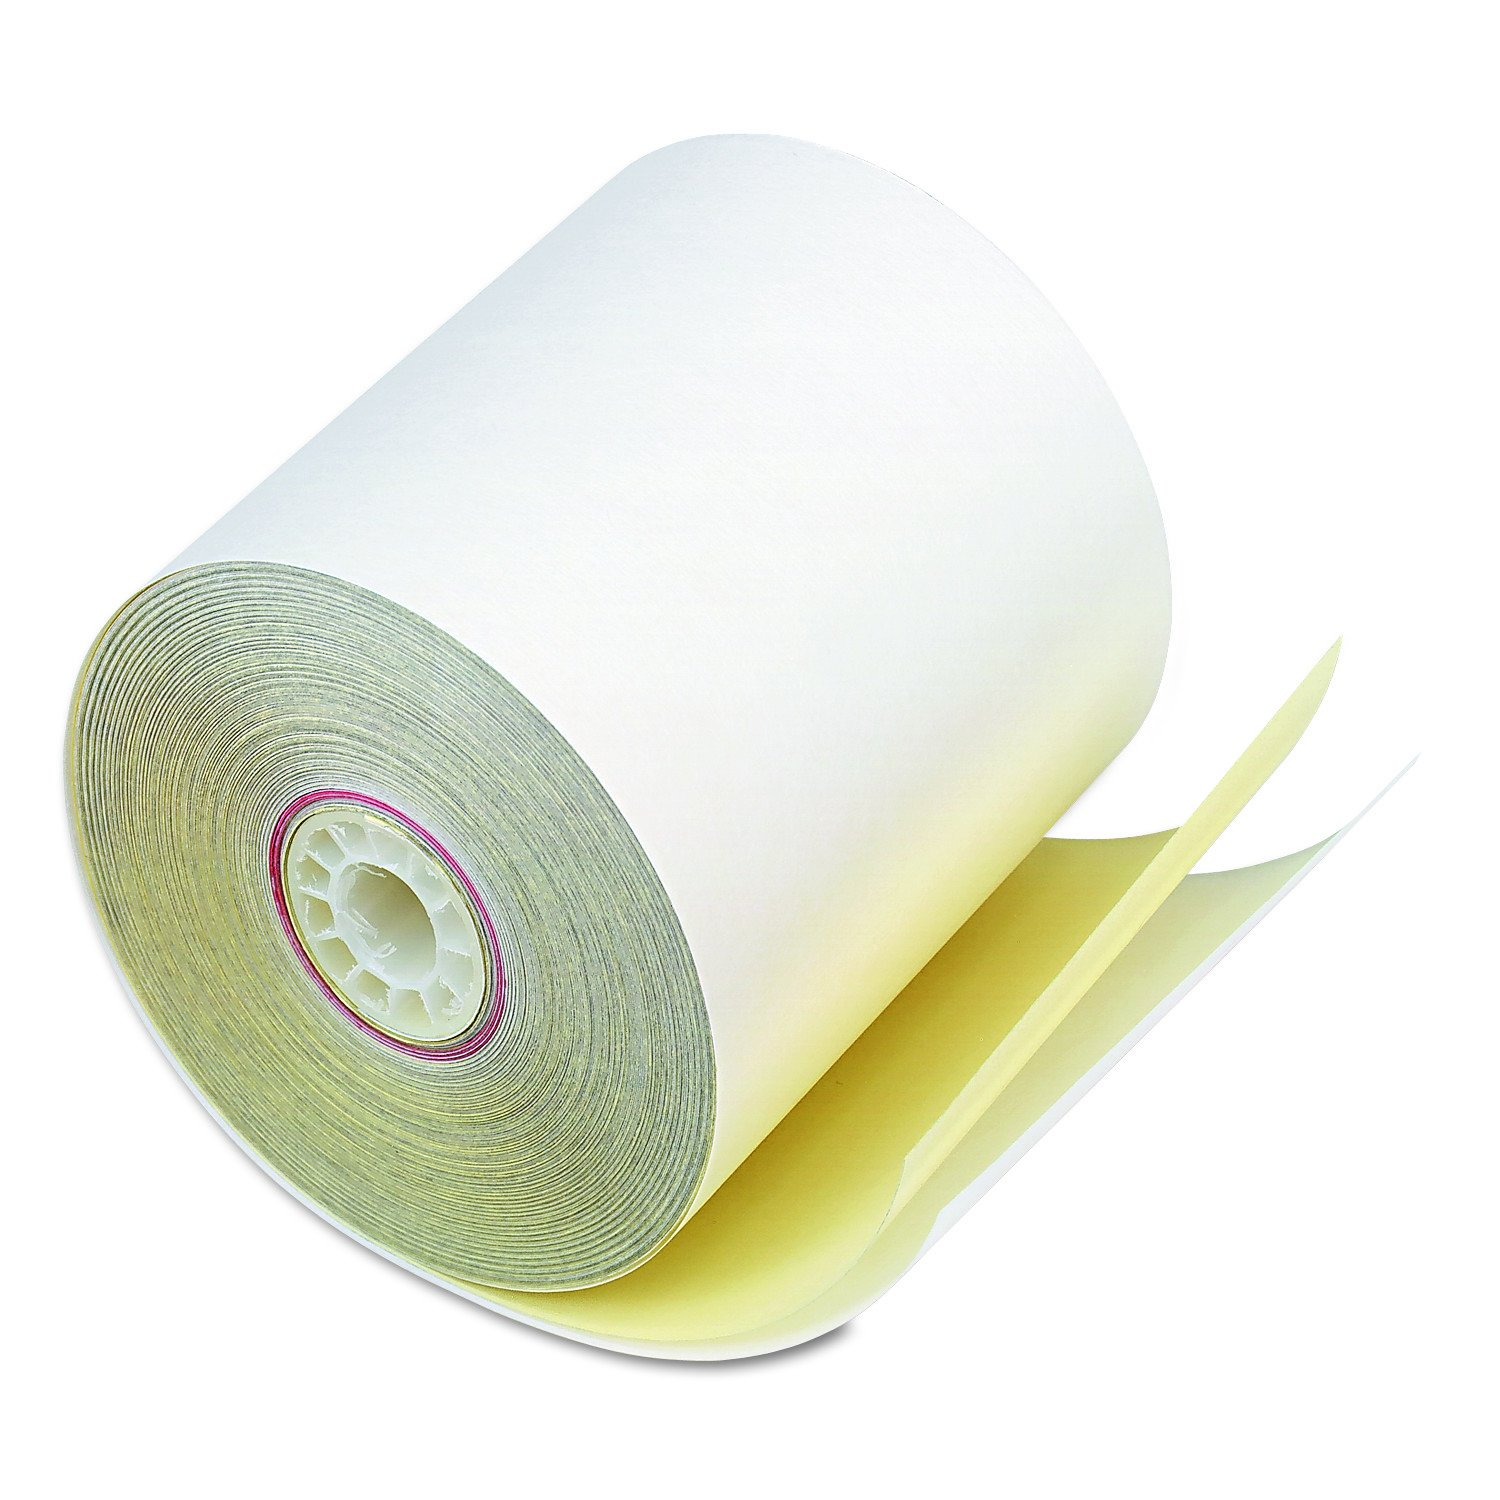 PM Company 07706 Carbonless Duplicate Cash Register Rolls, 3'' X 90', White/Canary, 50 Rolls/ctn